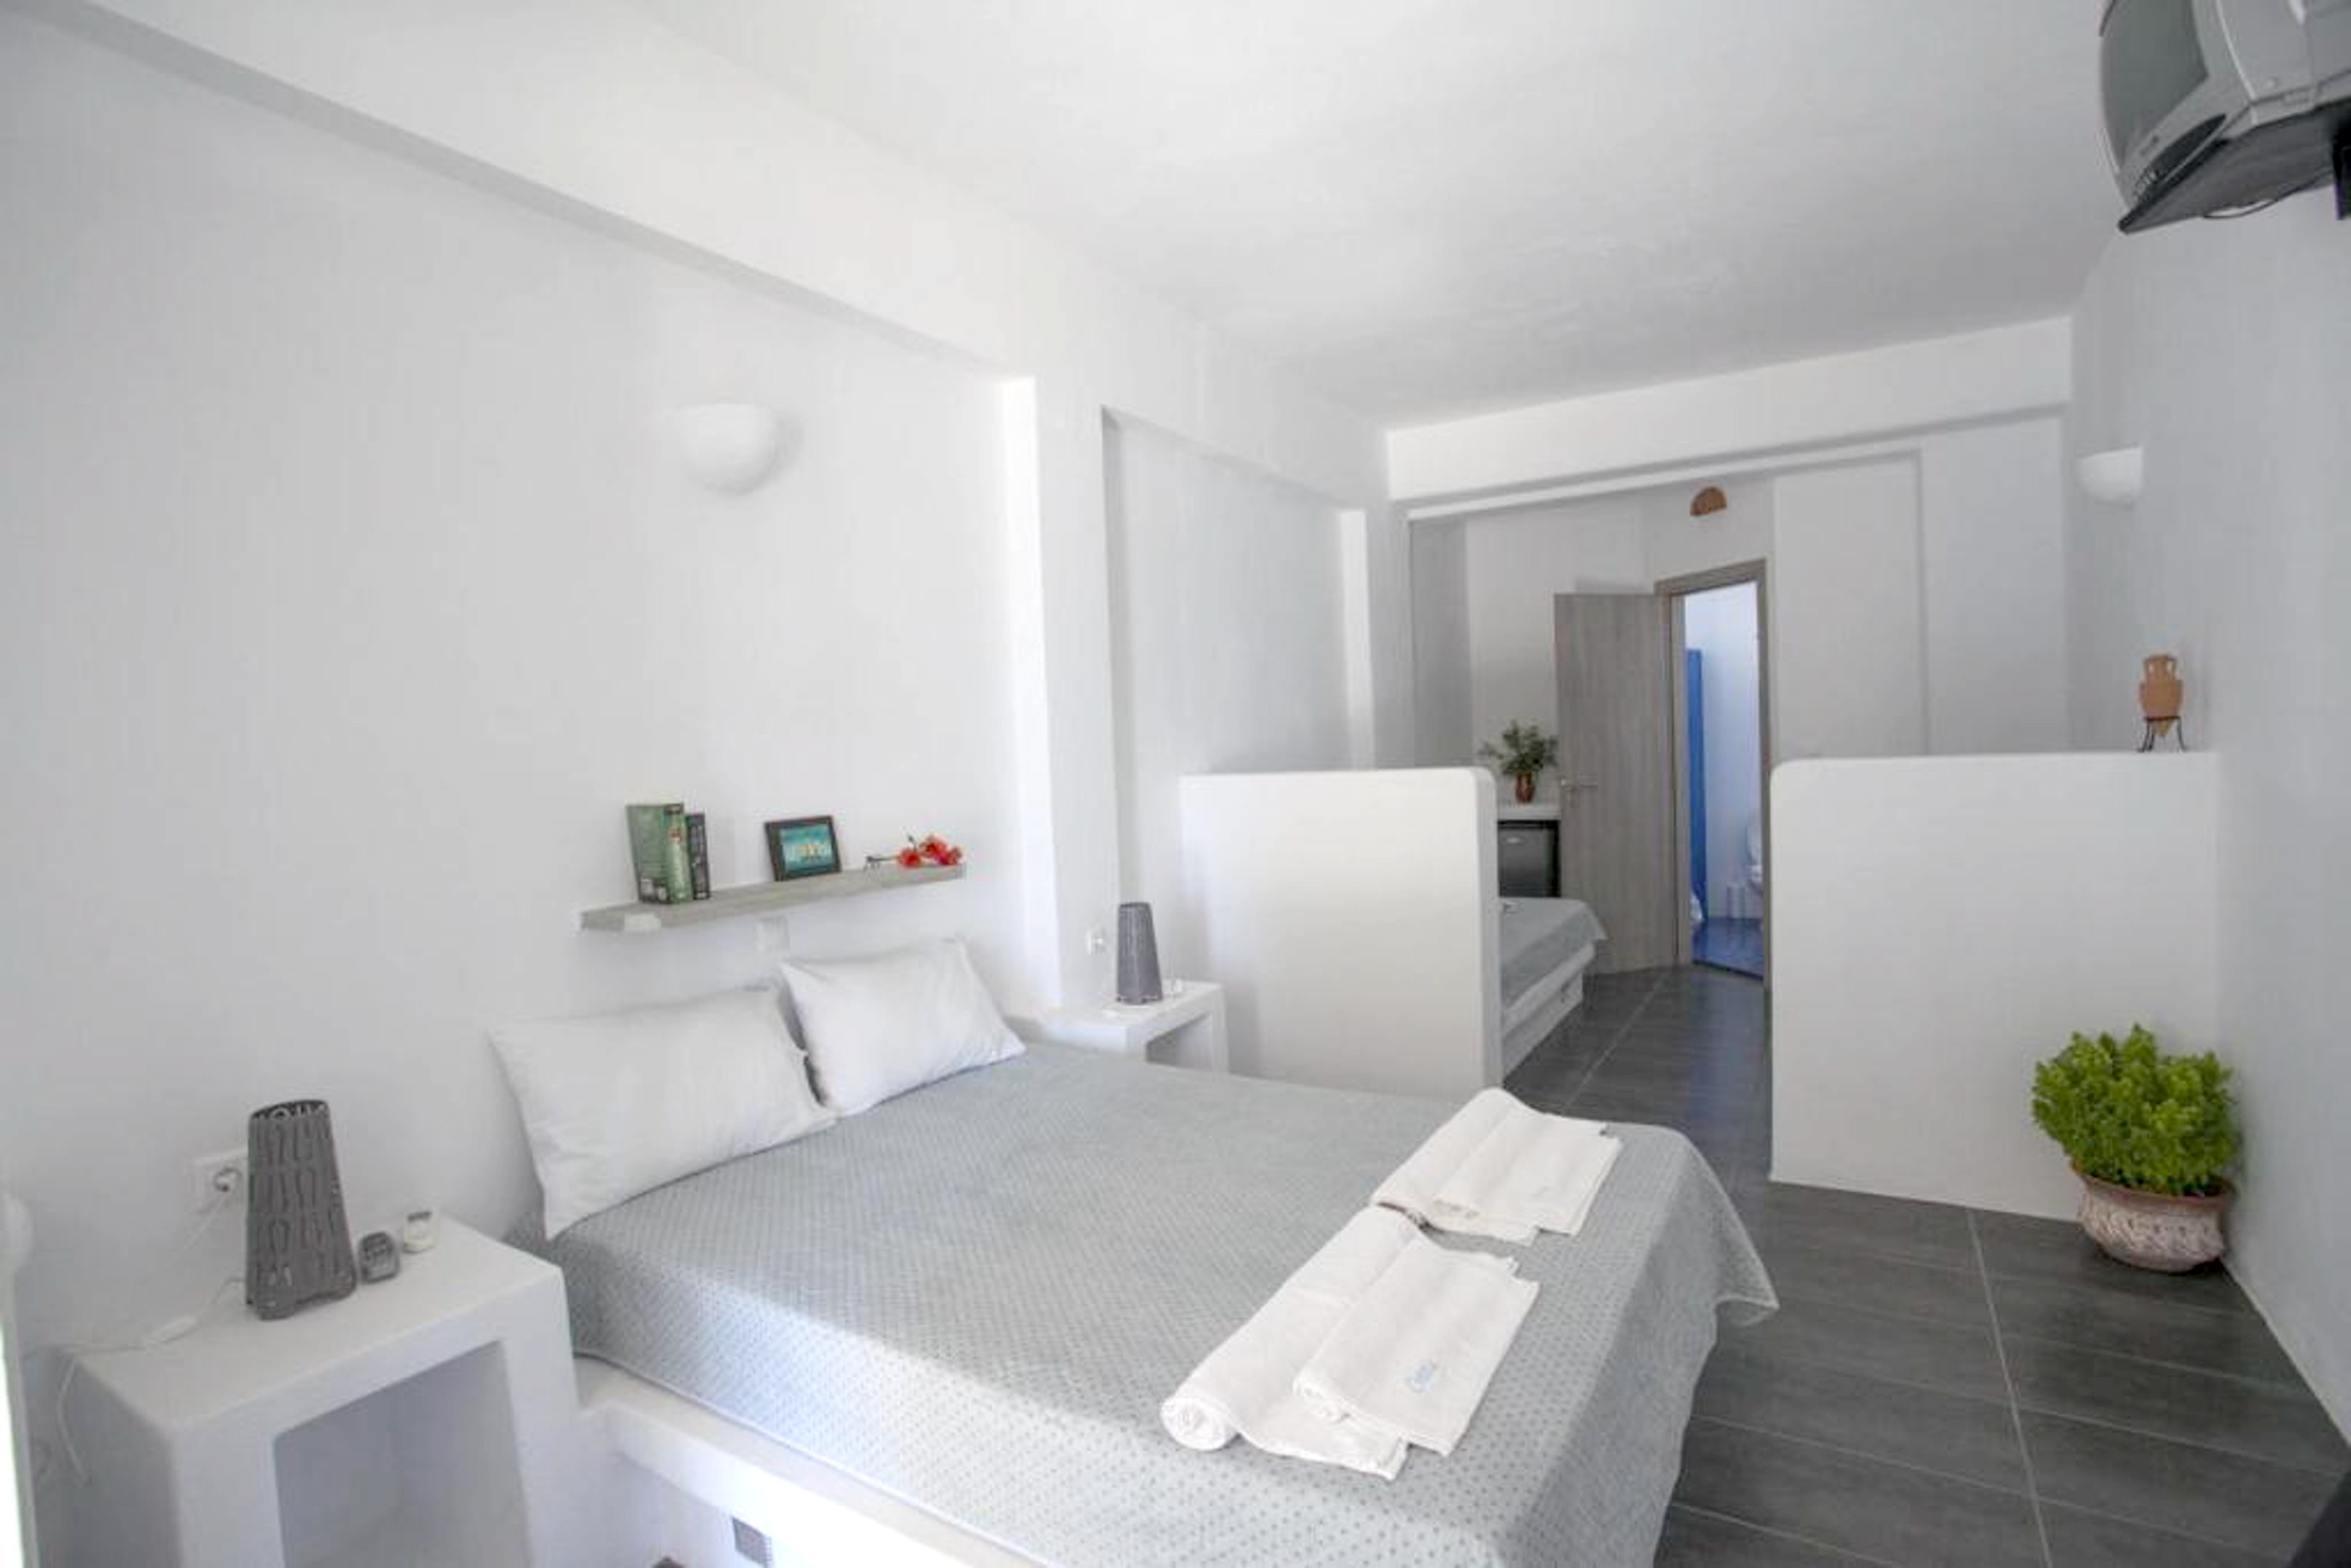 Holiday apartment Studio in Aliki mit herrlichem Meerblick, möblierter Terrasse und W-LAN (2201967), Aliki, Paros, Cyclades, Greece, picture 1